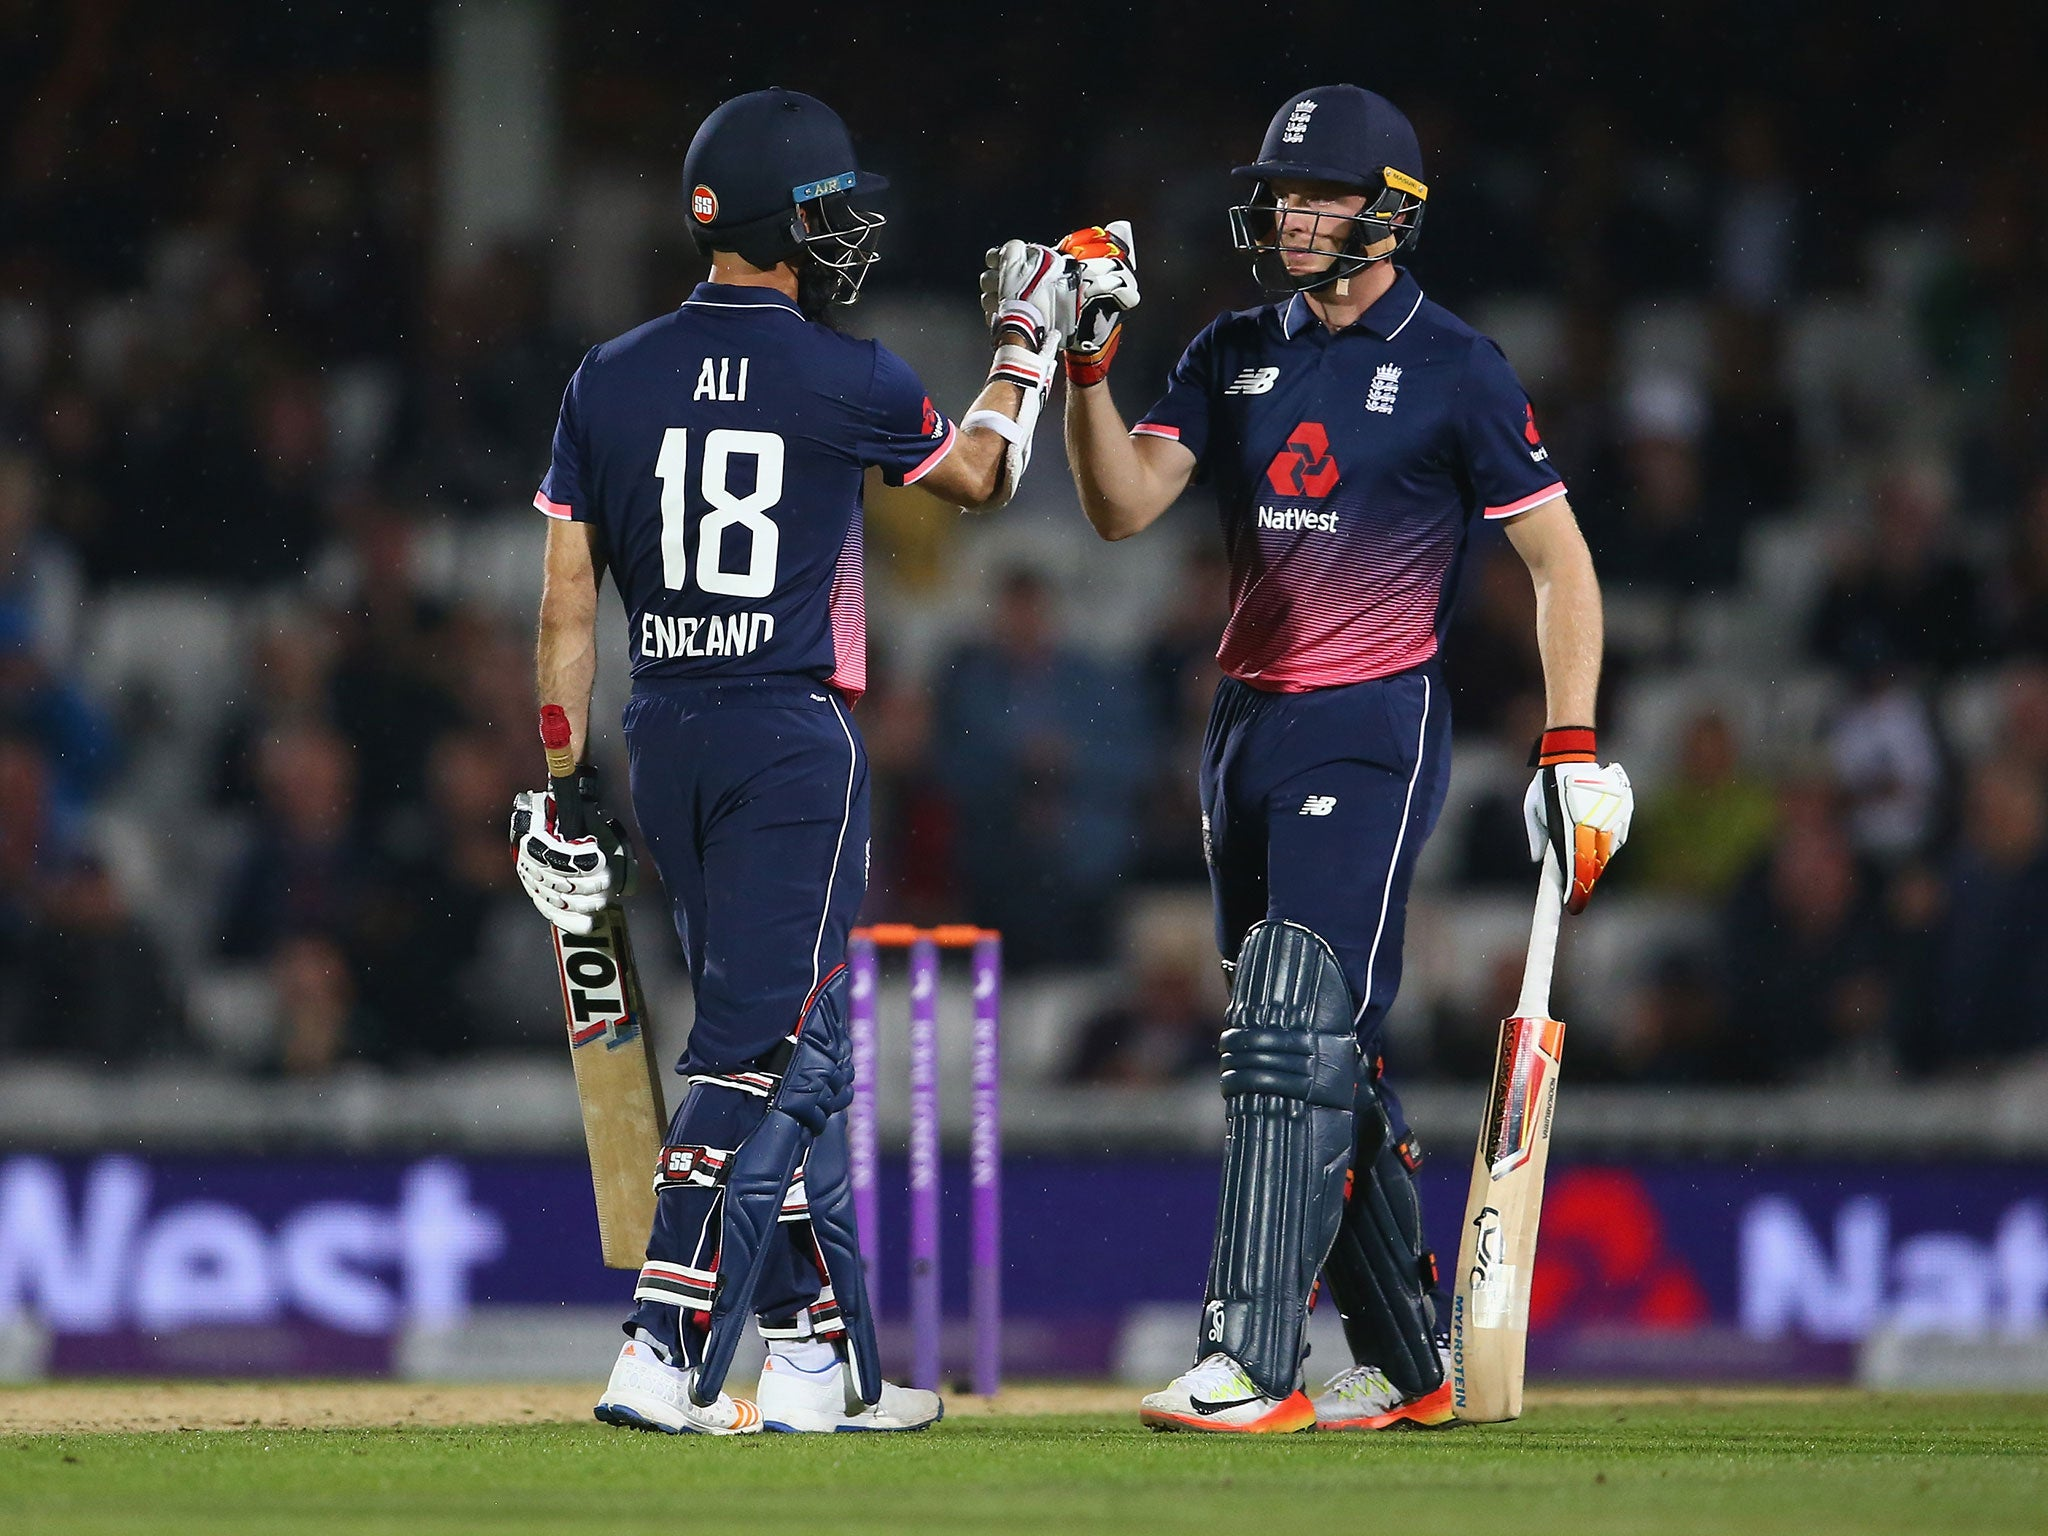 Jos Buttler And Moeen Ali Lead The Way As England Clinch Series Win Against West Indies With One Game To Spare